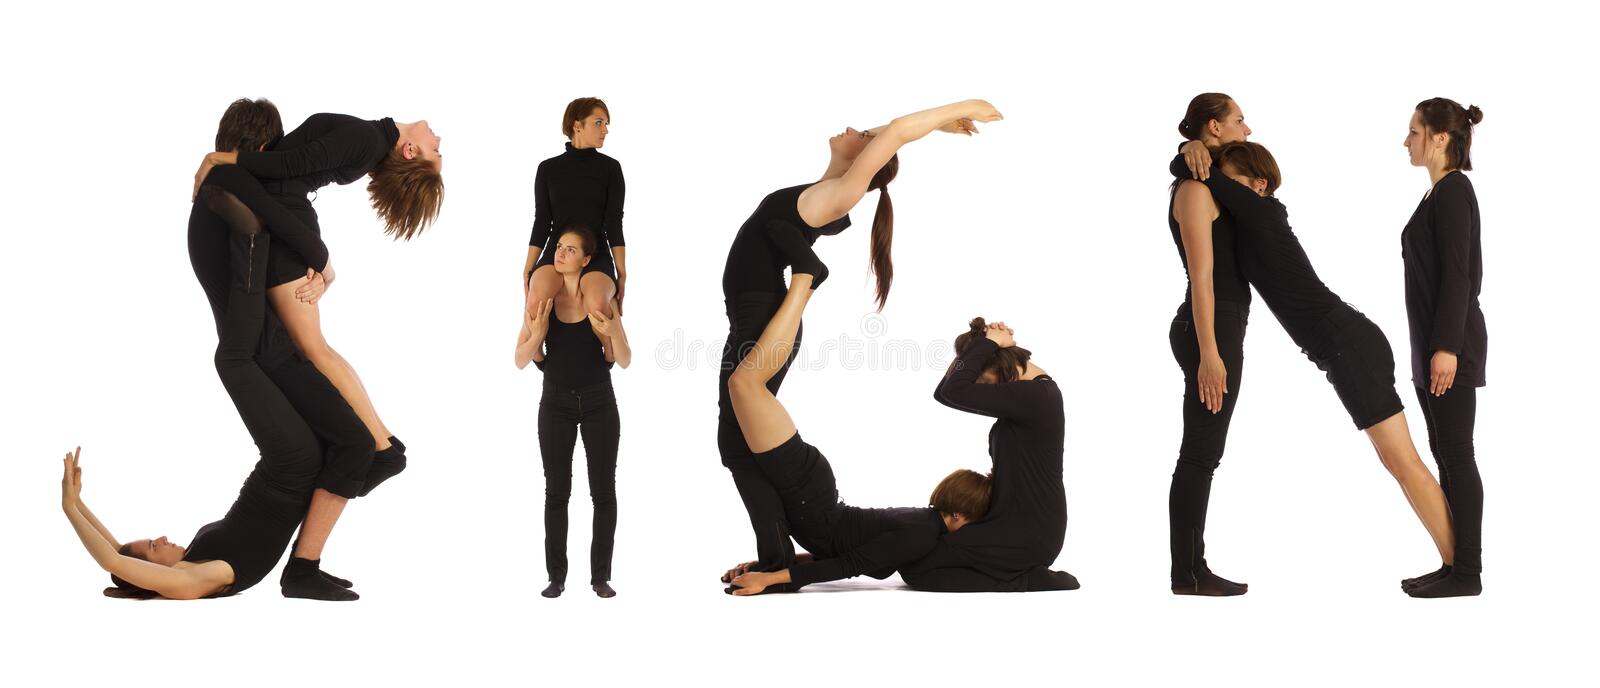 Black dressed people forming SIGN word royalty free stock image